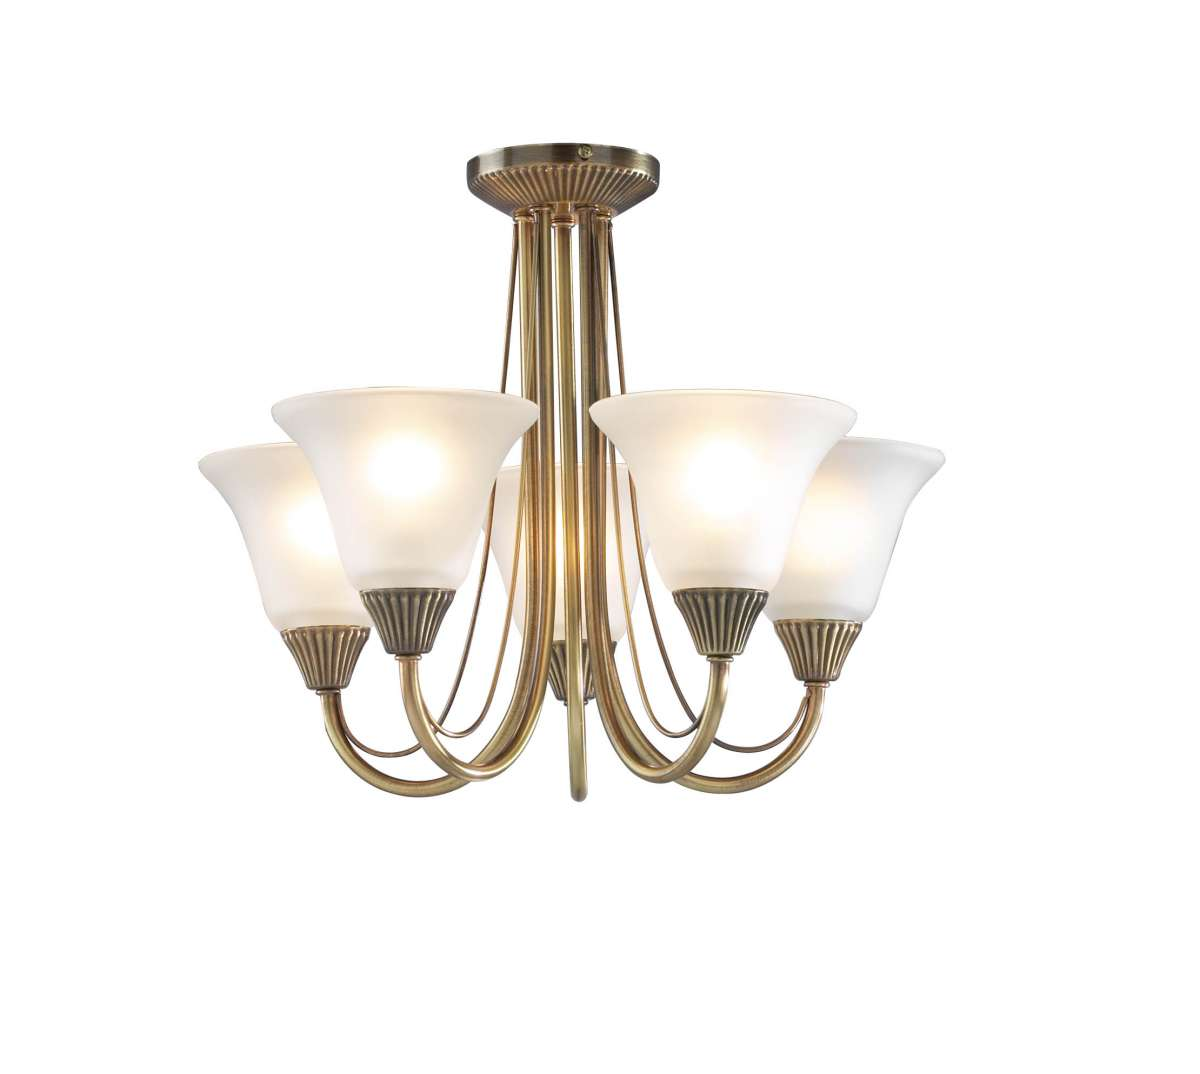 Boston 5-Light Antique Brass Semi-Flush Fitting